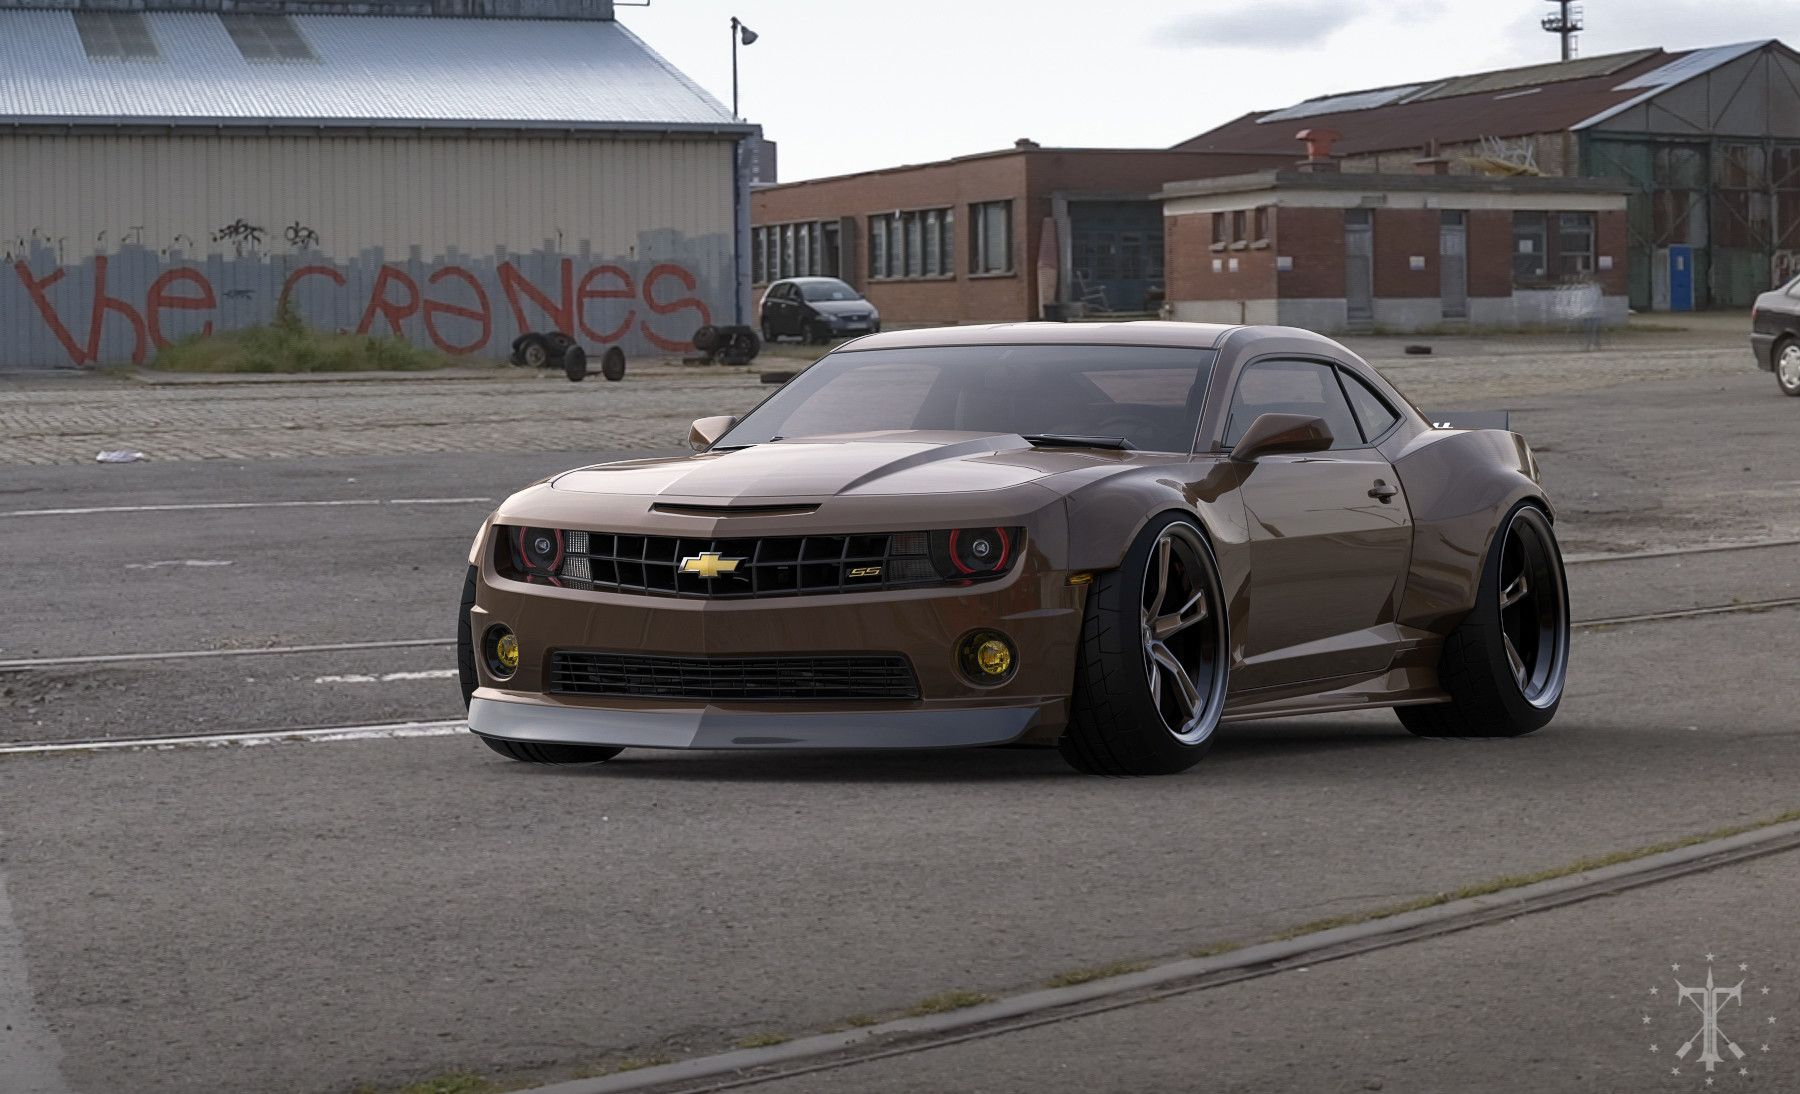 Widebody kit for Chevy Camaro  Modeling and visualization of body